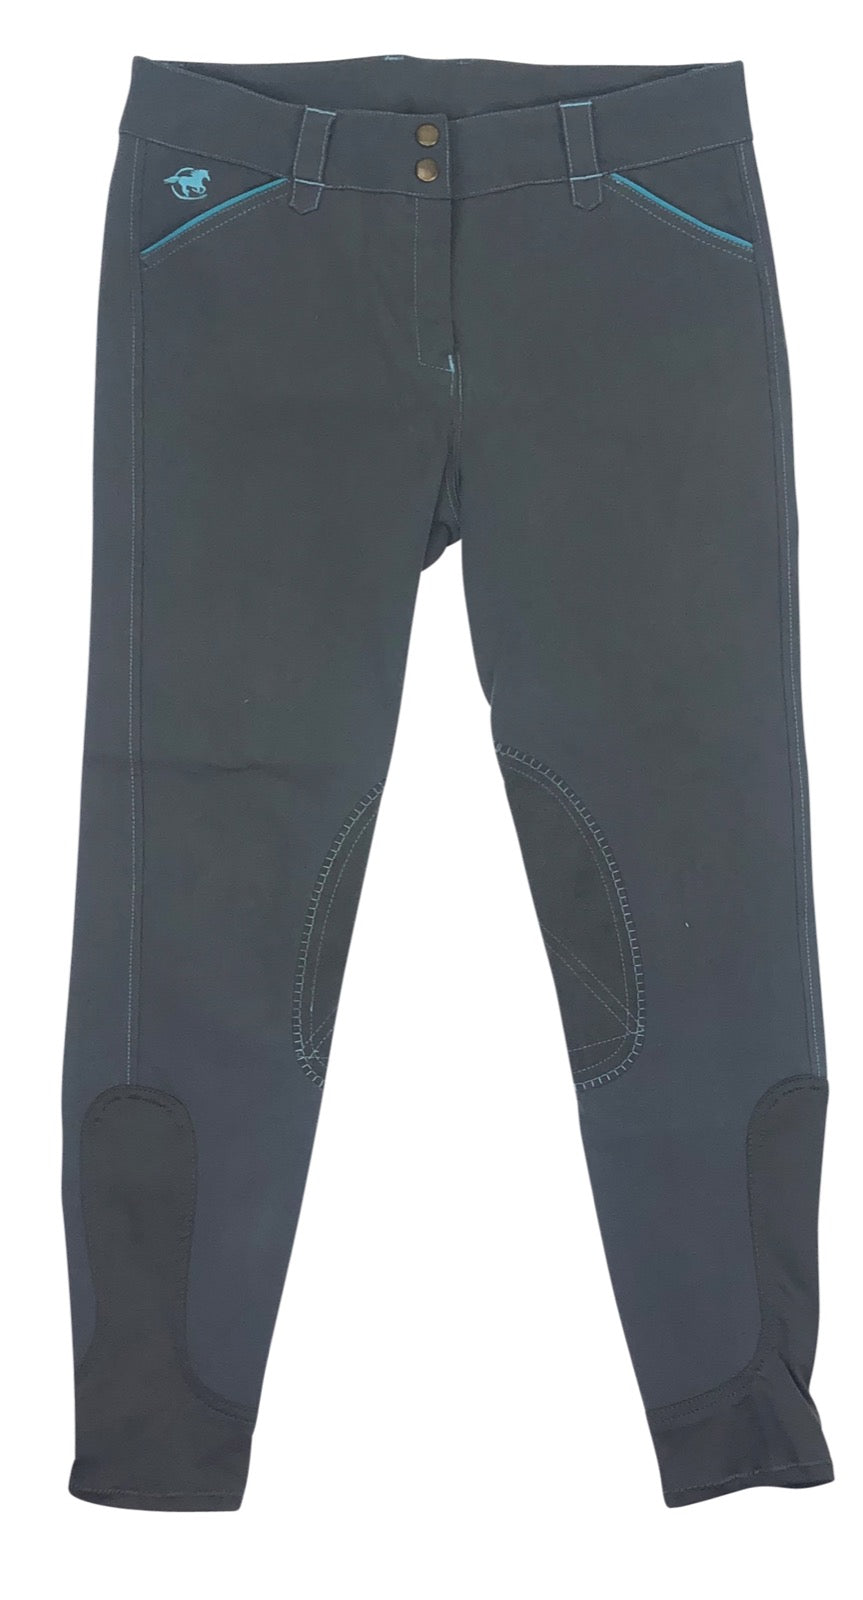 front view of SmartPak Piper Knee Patch Breeches in Grey/Blue